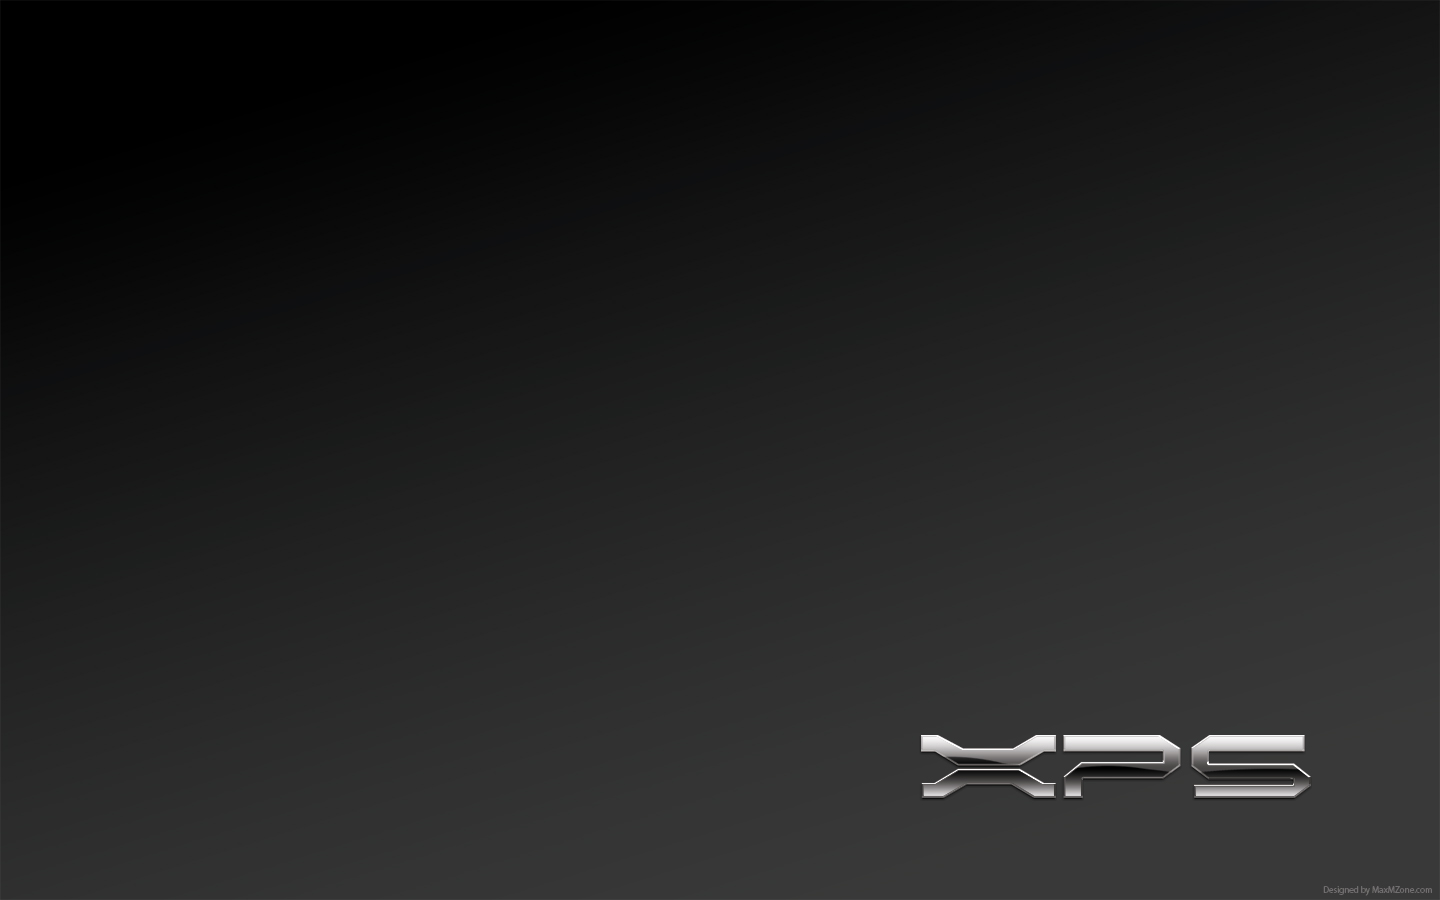 xps wallpaper black and white by mmz customization wallpaper hdtv 1440x900